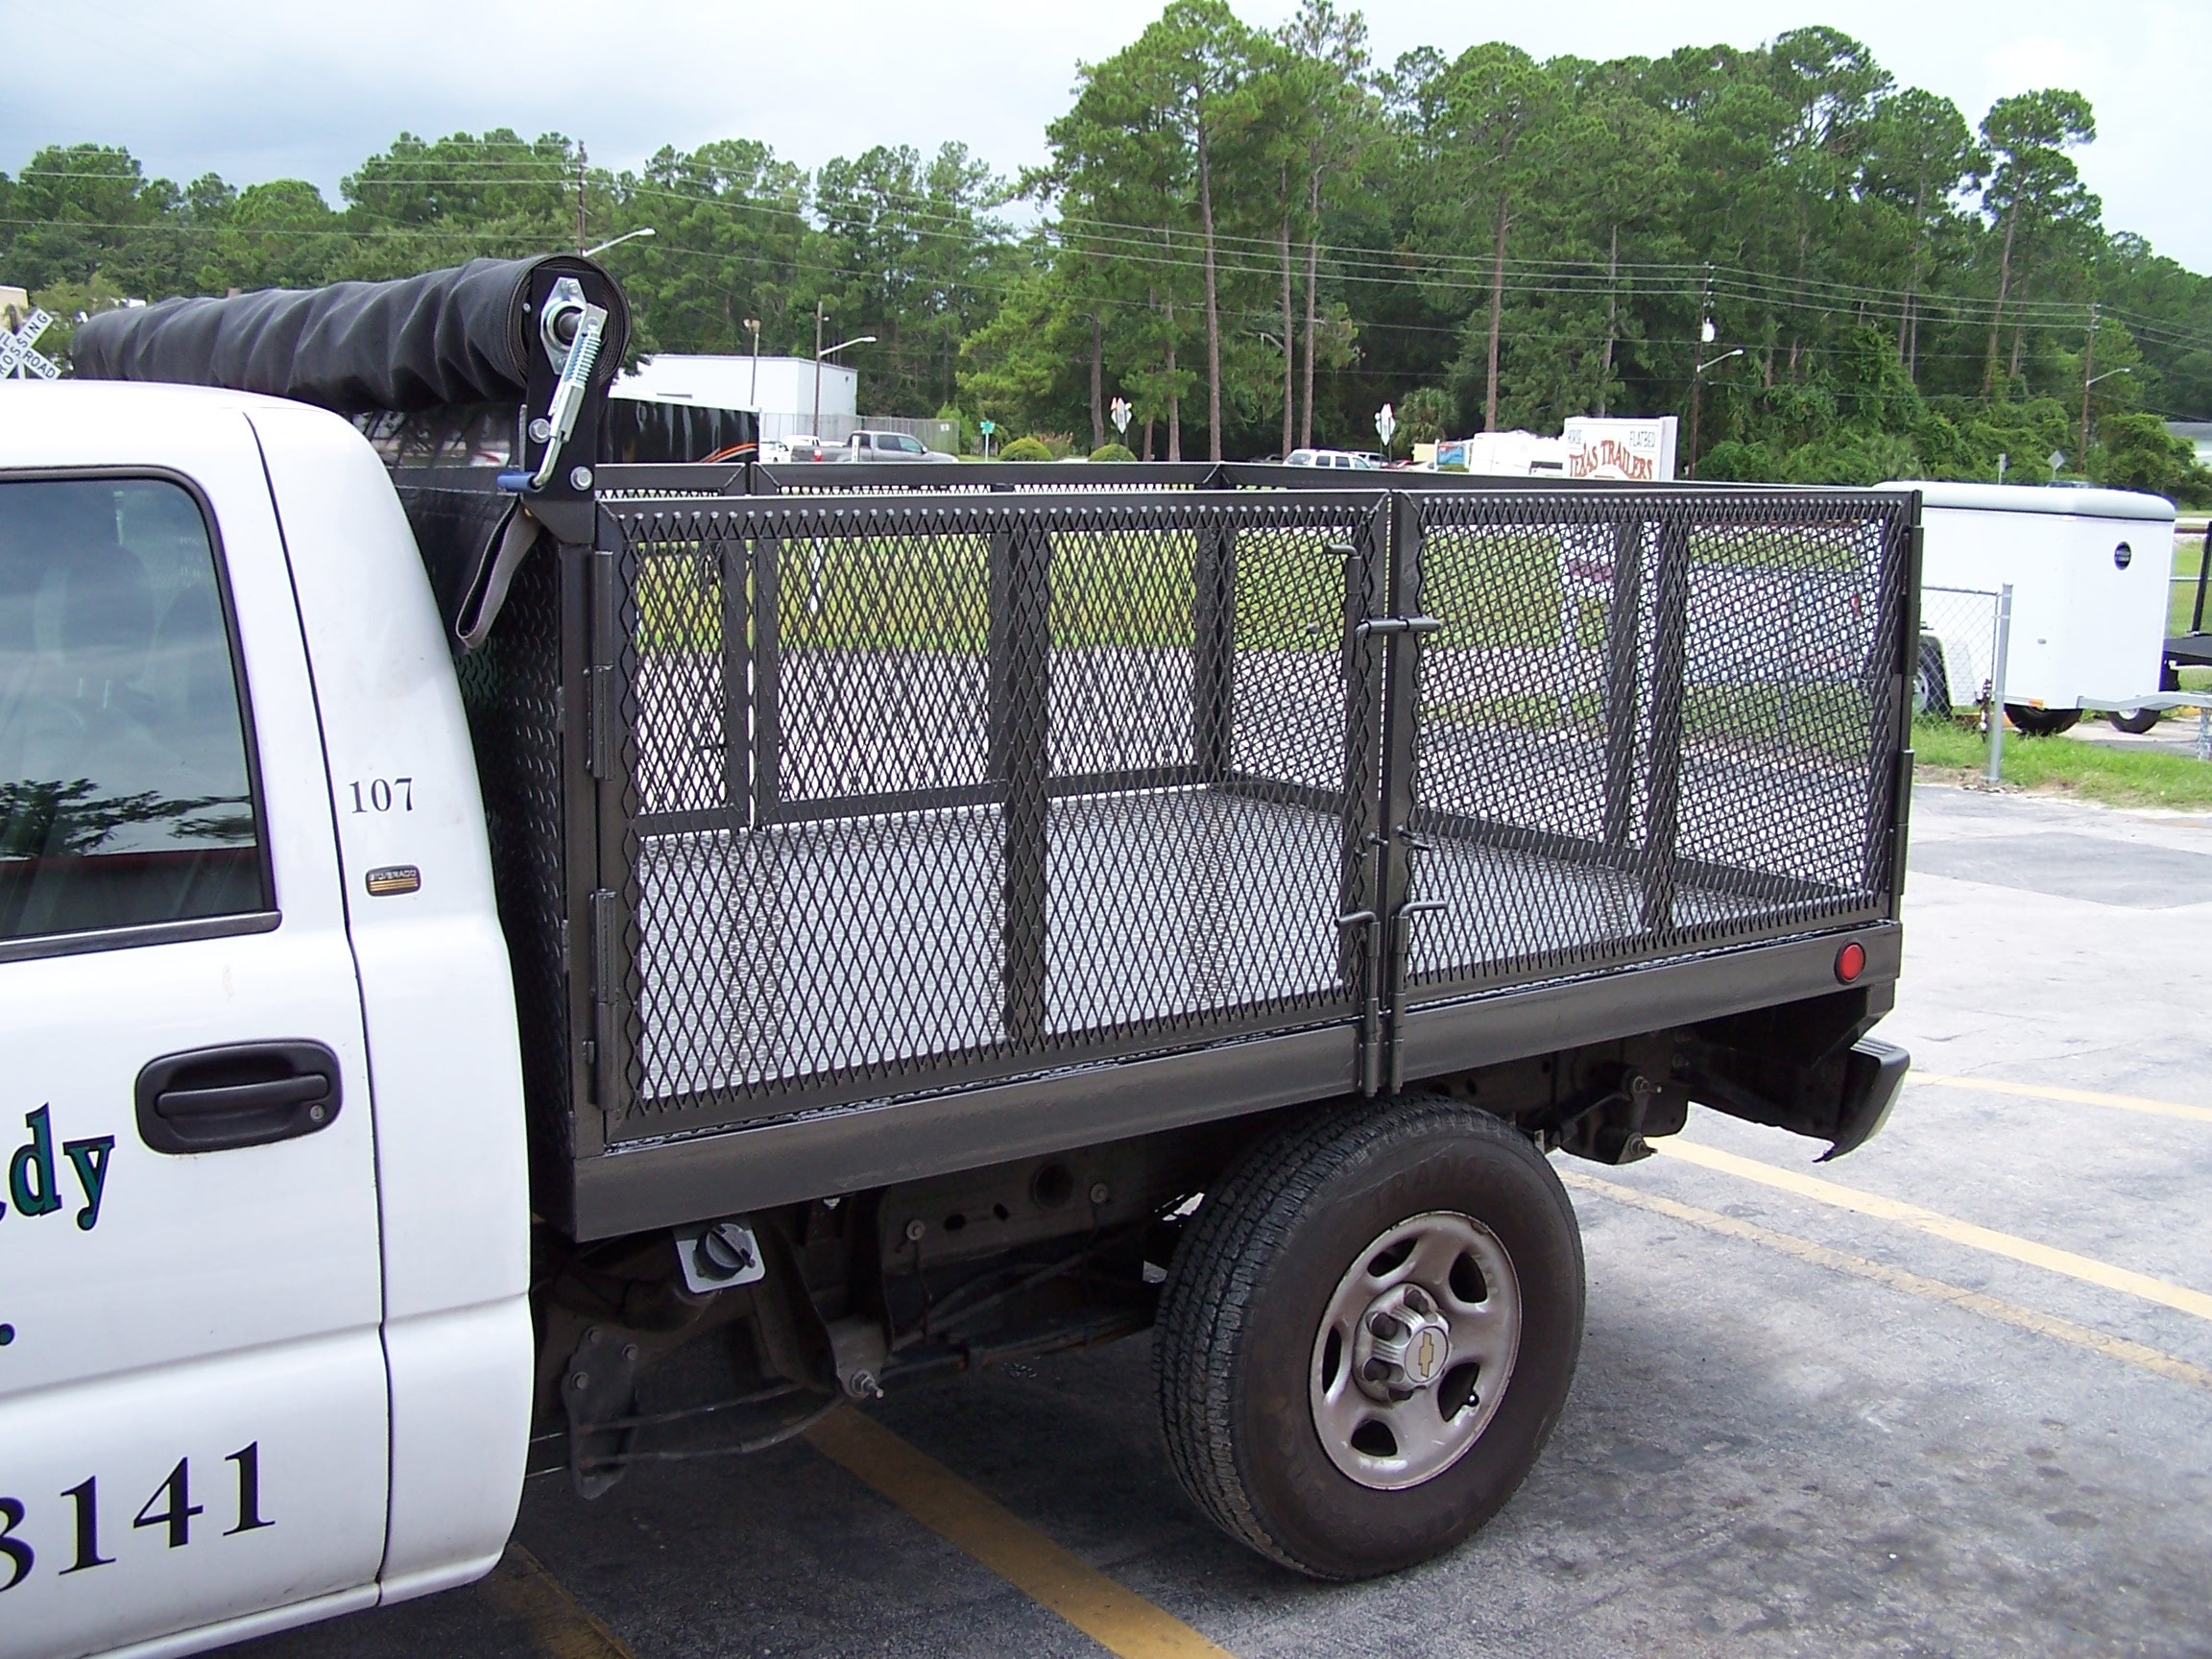 beds front truck fabrication customs kansas custom sportside welding round advantage img bed